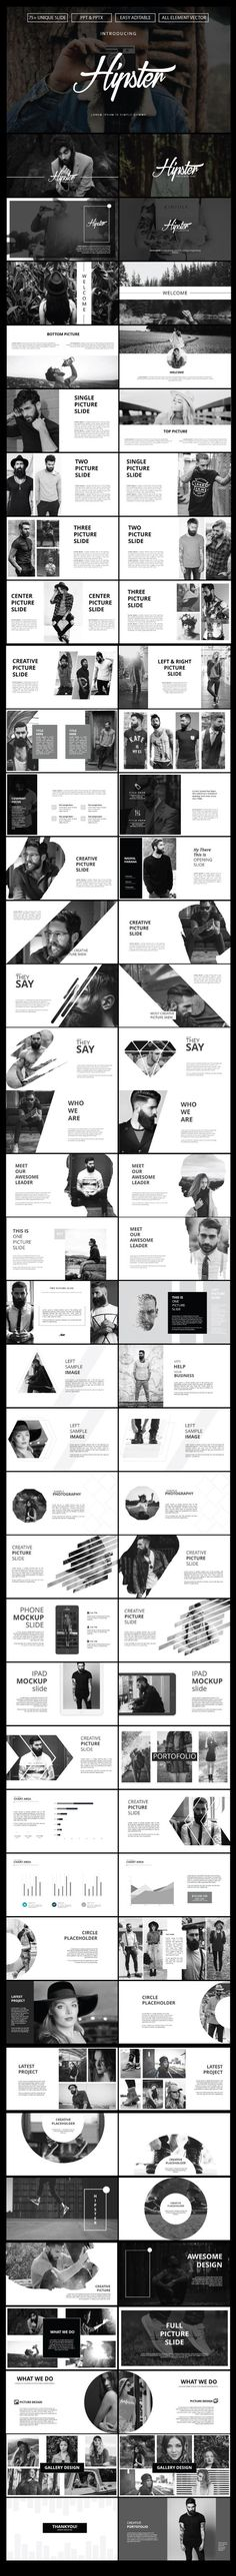 Buy Hipster Powerpoint Template by fikrana on GraphicRiver. MAIN FILE: Images Placeholder Drag And Drop image Theme Colour Option, Easy to change colors, Fully editable text, ph. Keynote Design, Ppt Design, Brochure Design, Layout Design, Design Graphique, Art Graphique, Website Design Inspiration, Graphic Design Inspiration, Editorial Layout